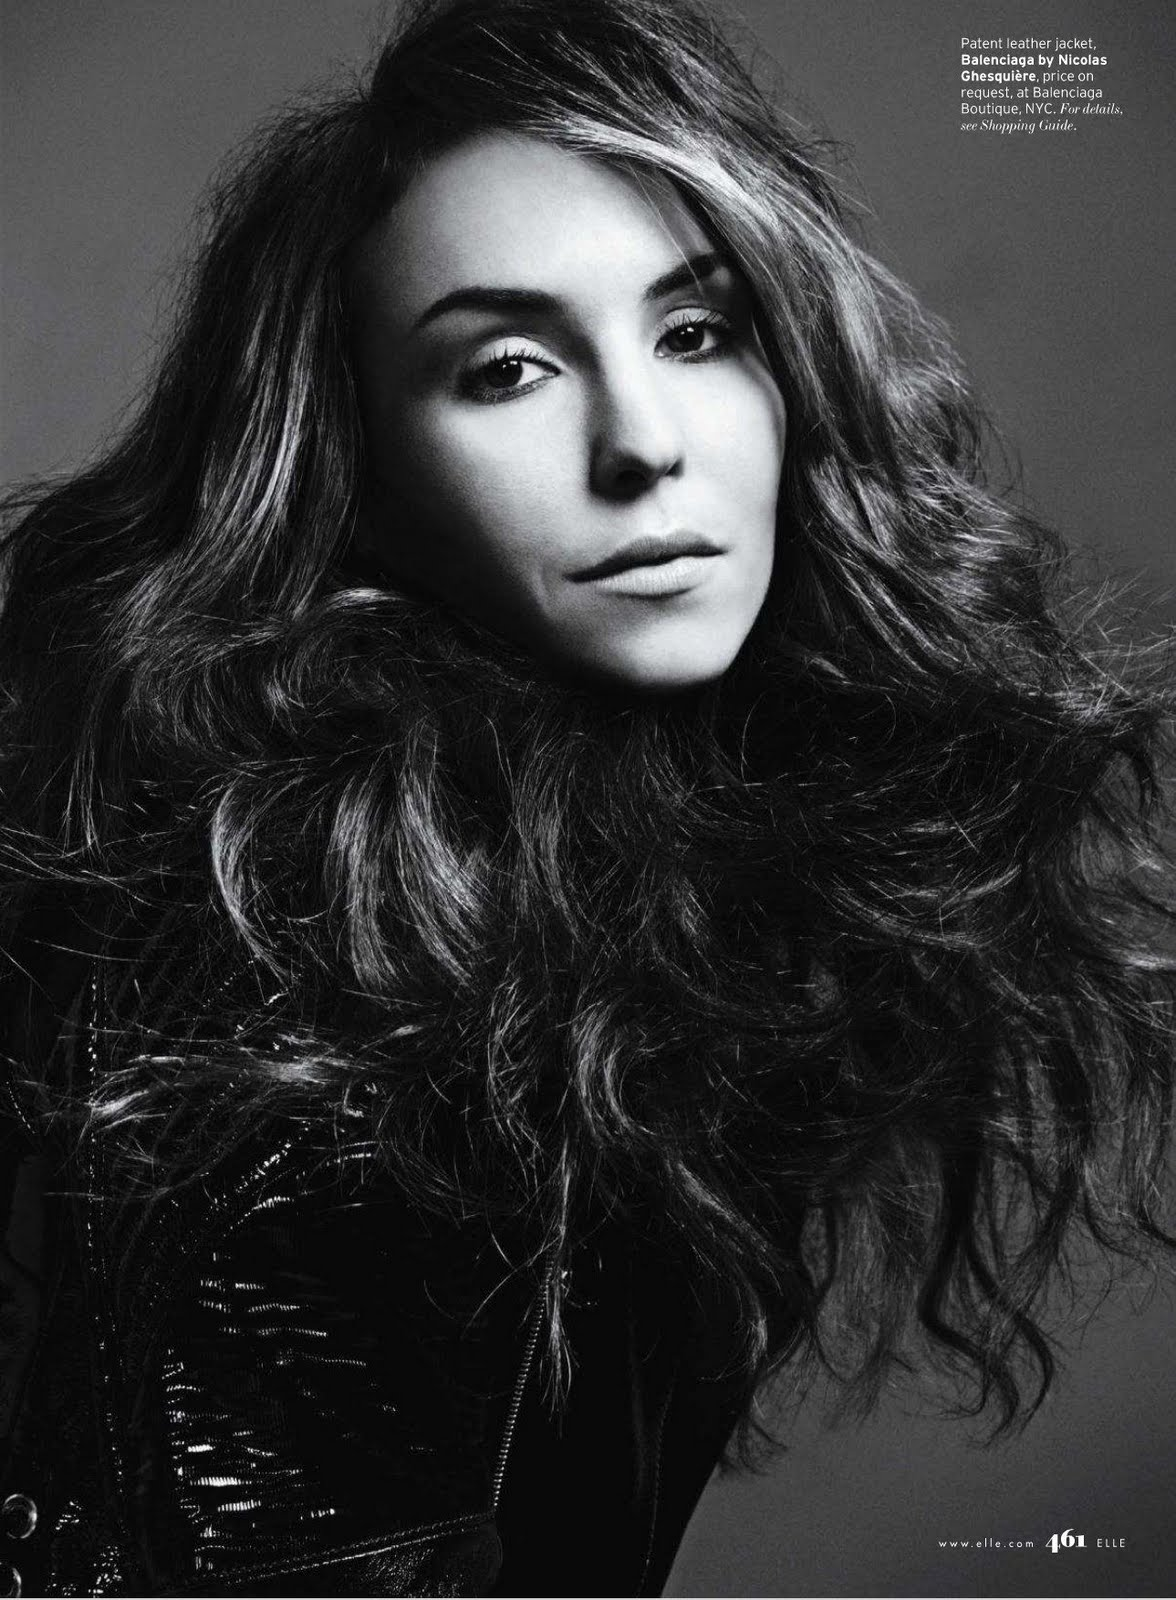 Noomi rapace how to pronounce nude naked pussy slip for Elle pronunciation